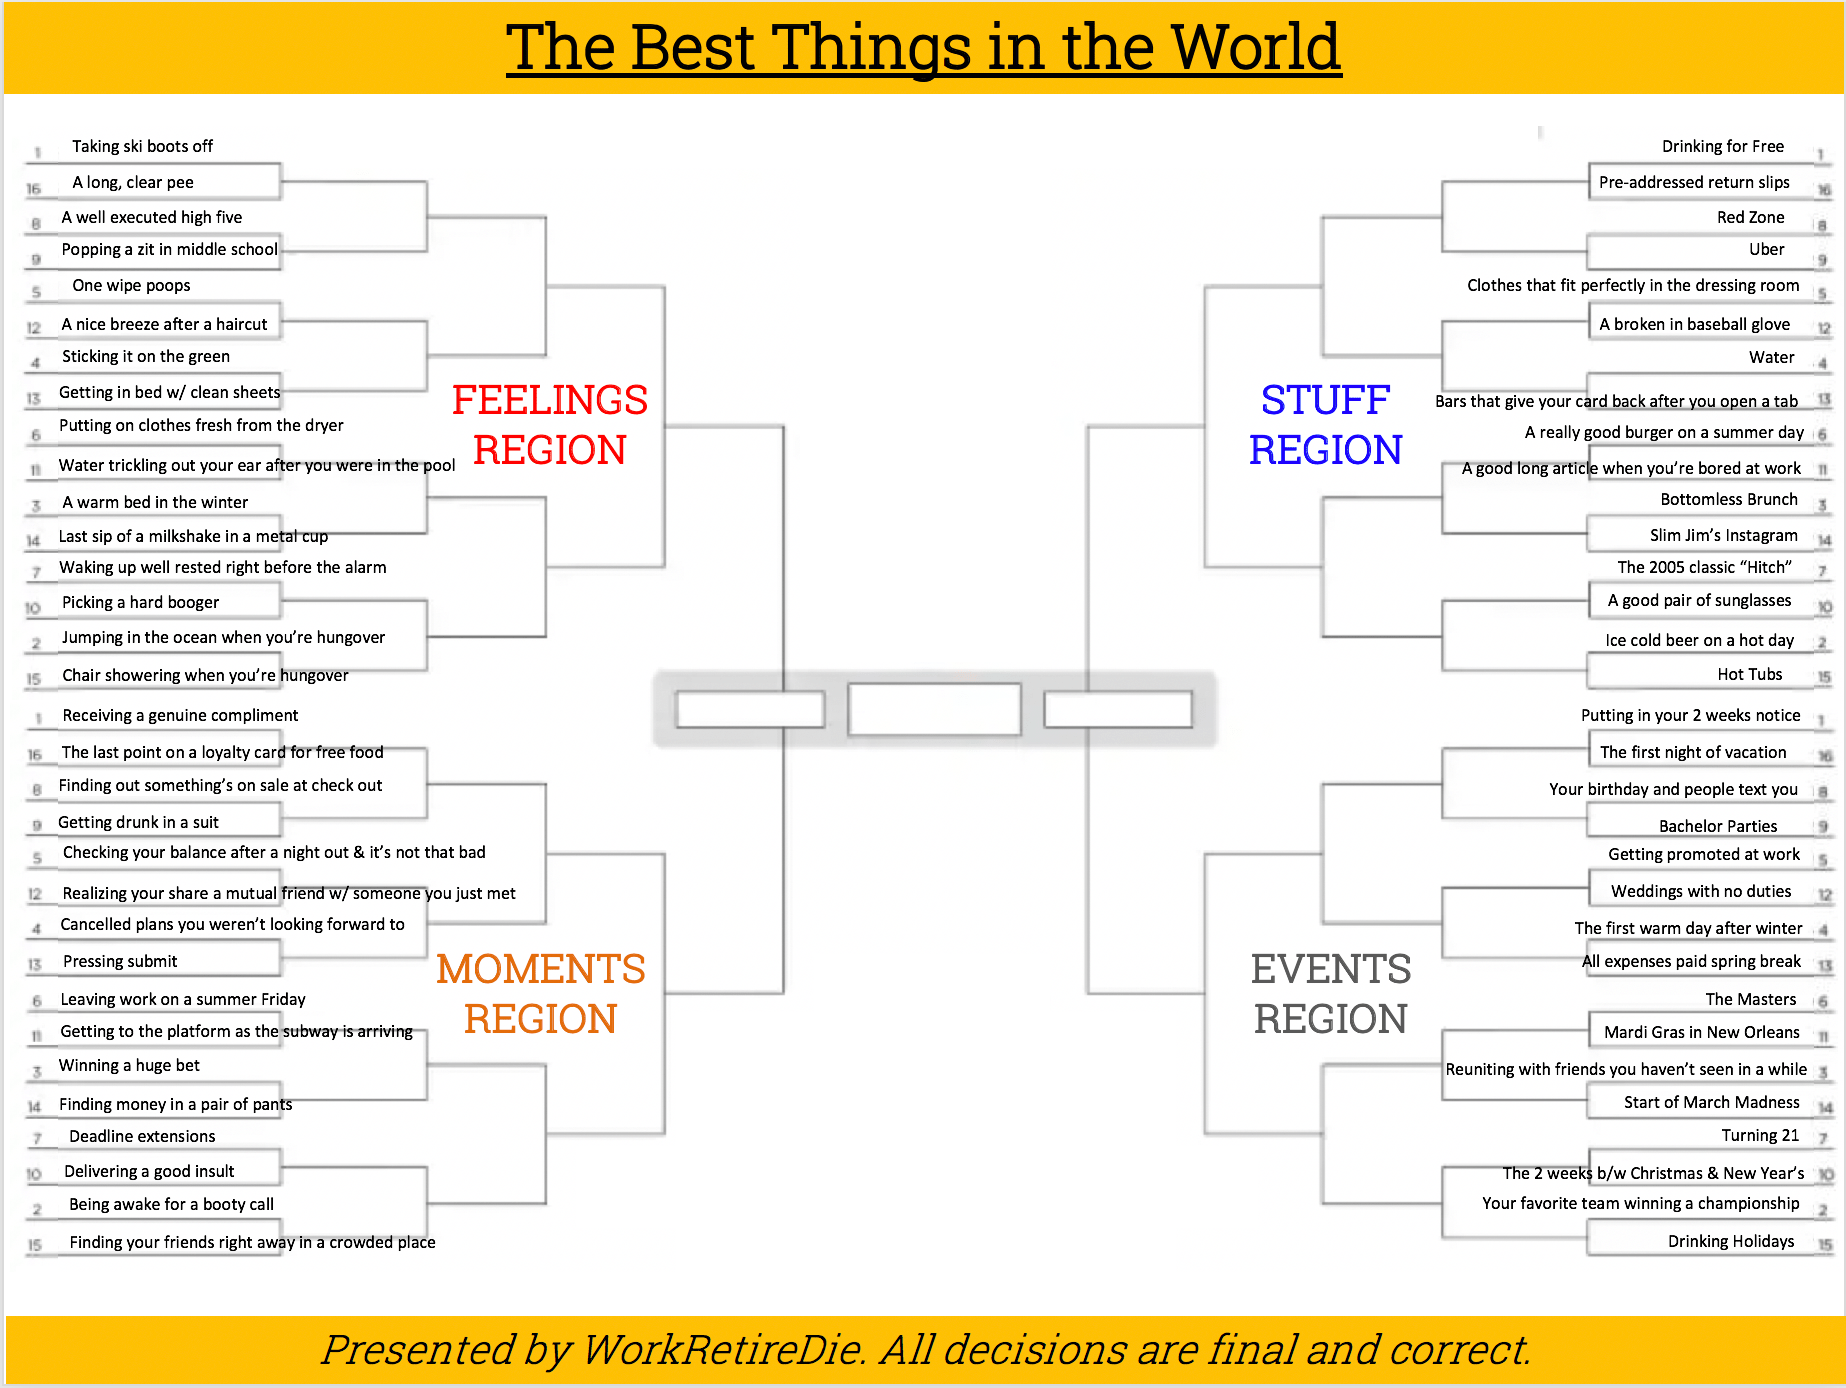 The Best Things in the World Bracket: Analysis, Projections and Match-Ups to Watch